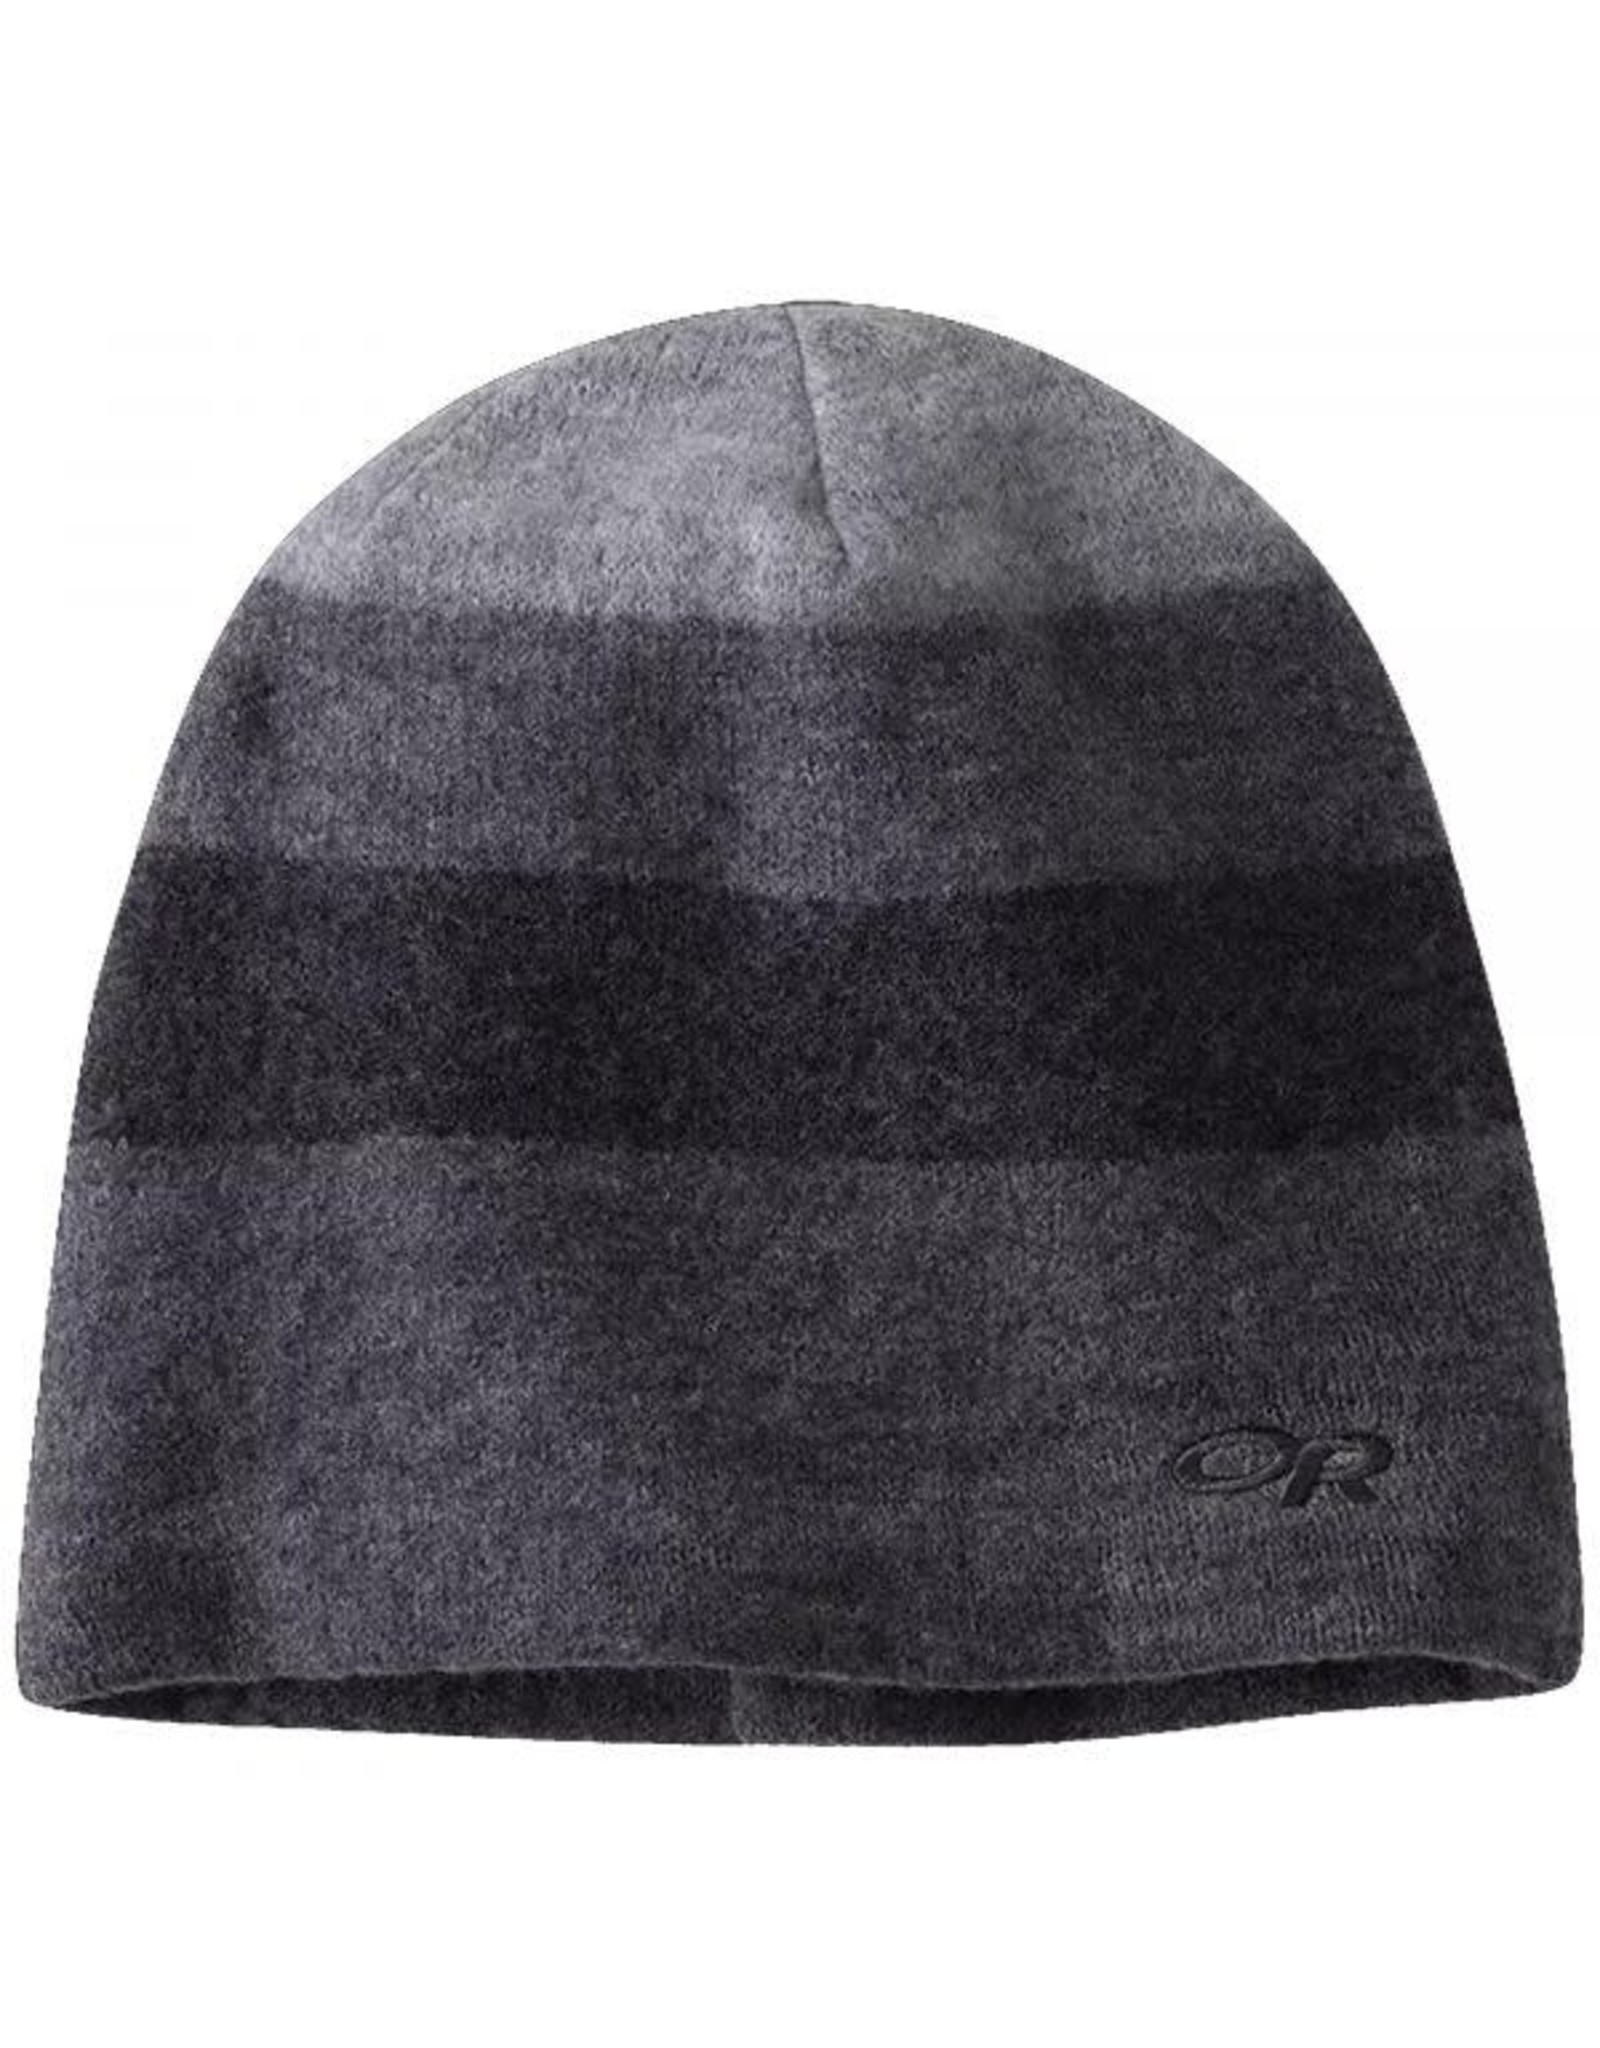 Outdoor Research Outdoor Research Gradient Beanie Charcoal Heather